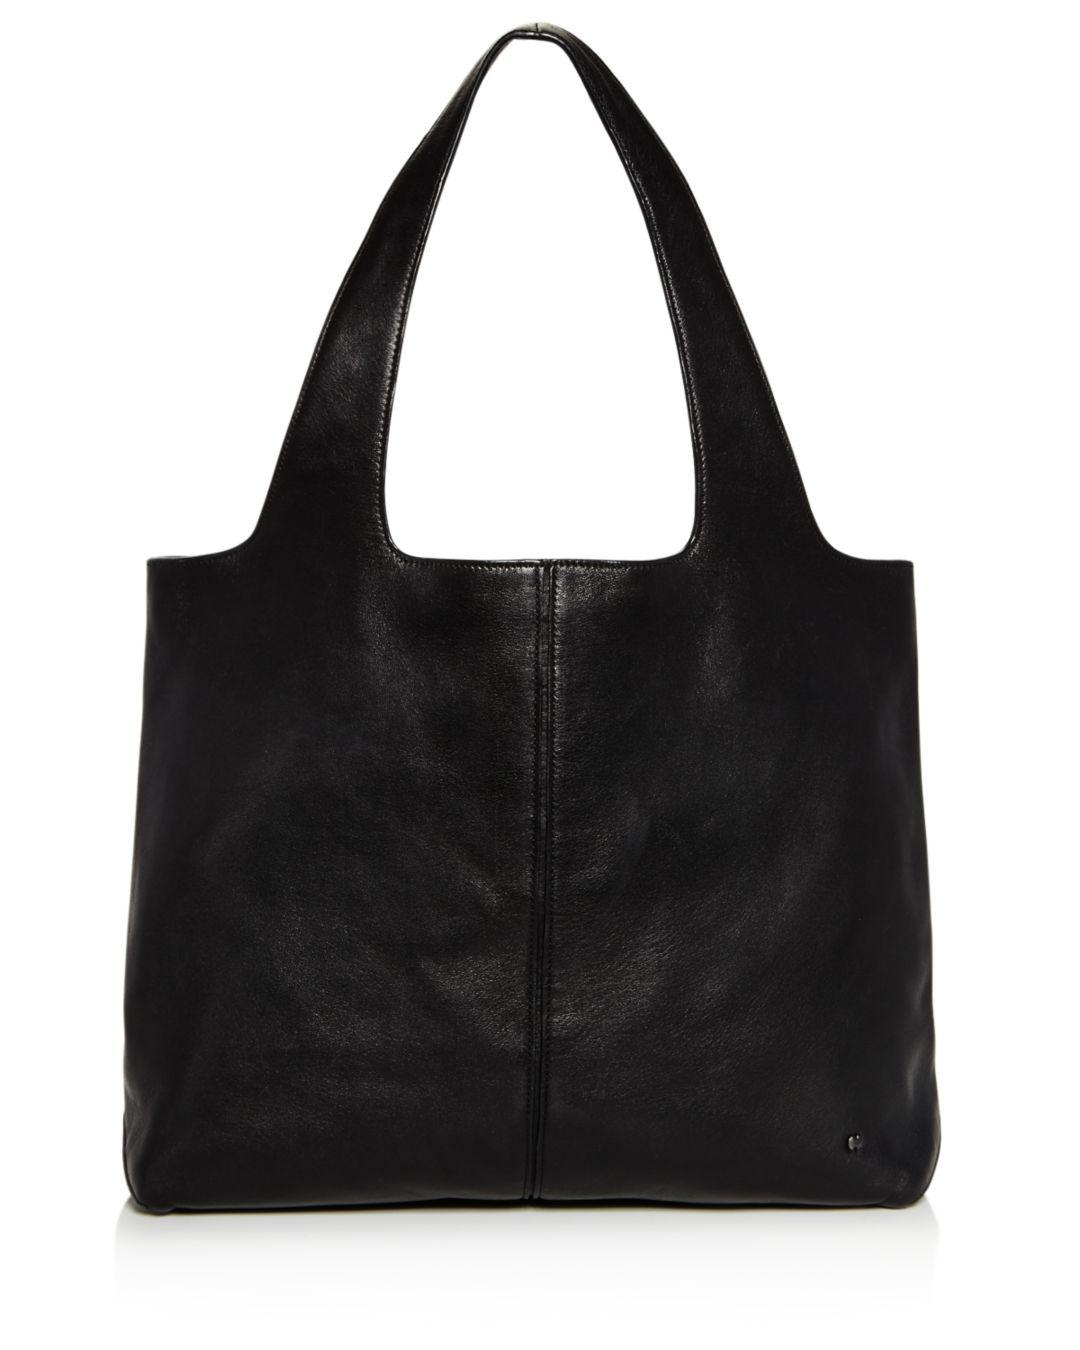 Lyst - Halston Heritage Tina Large Open Soft Leather Tote in Black 647ce19d2c59a